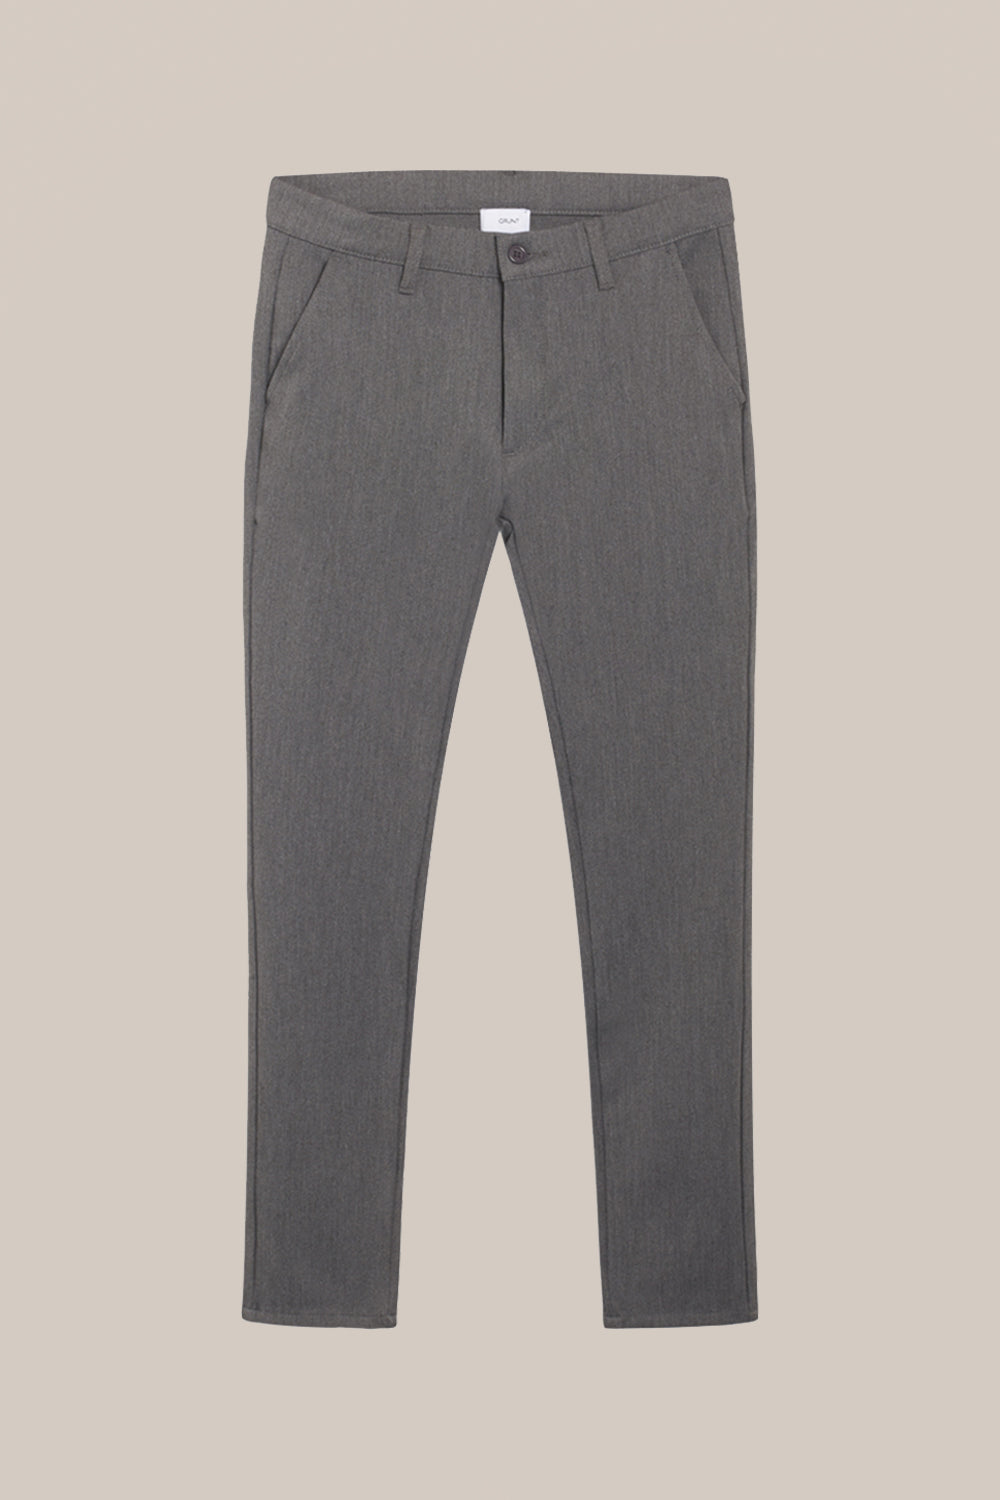 GRUNT Dude Ankle Pant Pants Light Grey